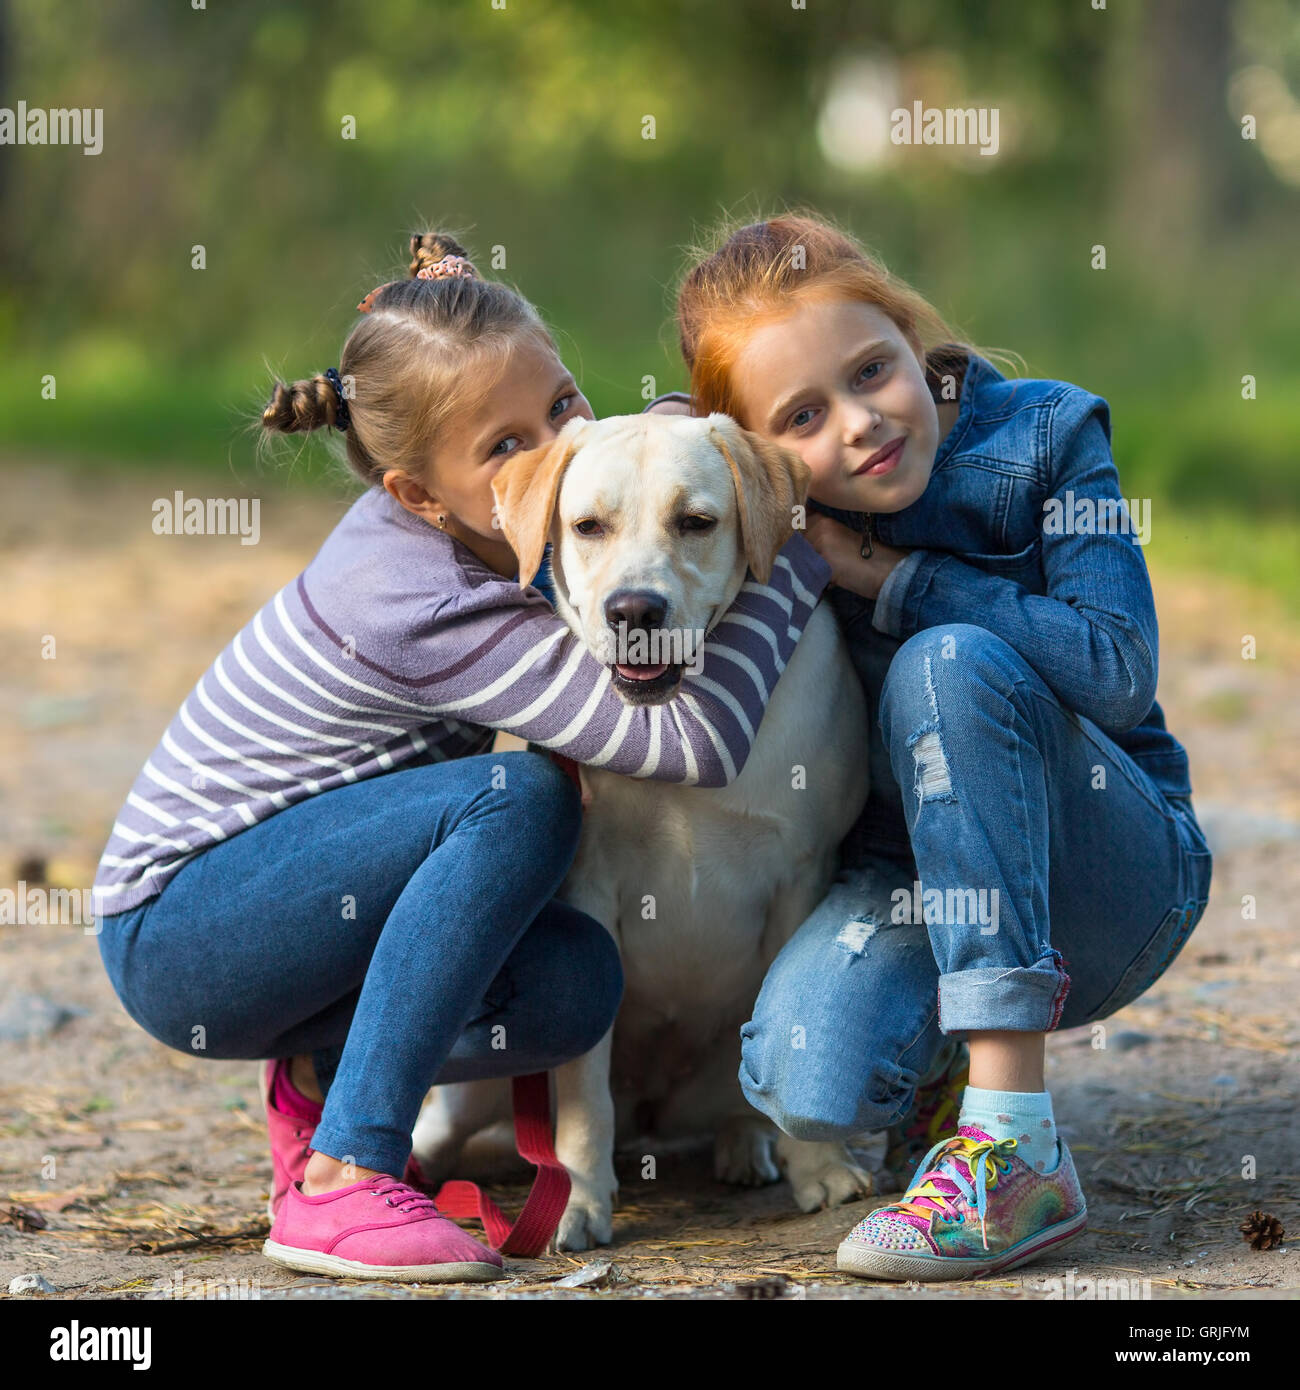 Two little girls with a dog. - Stock Image